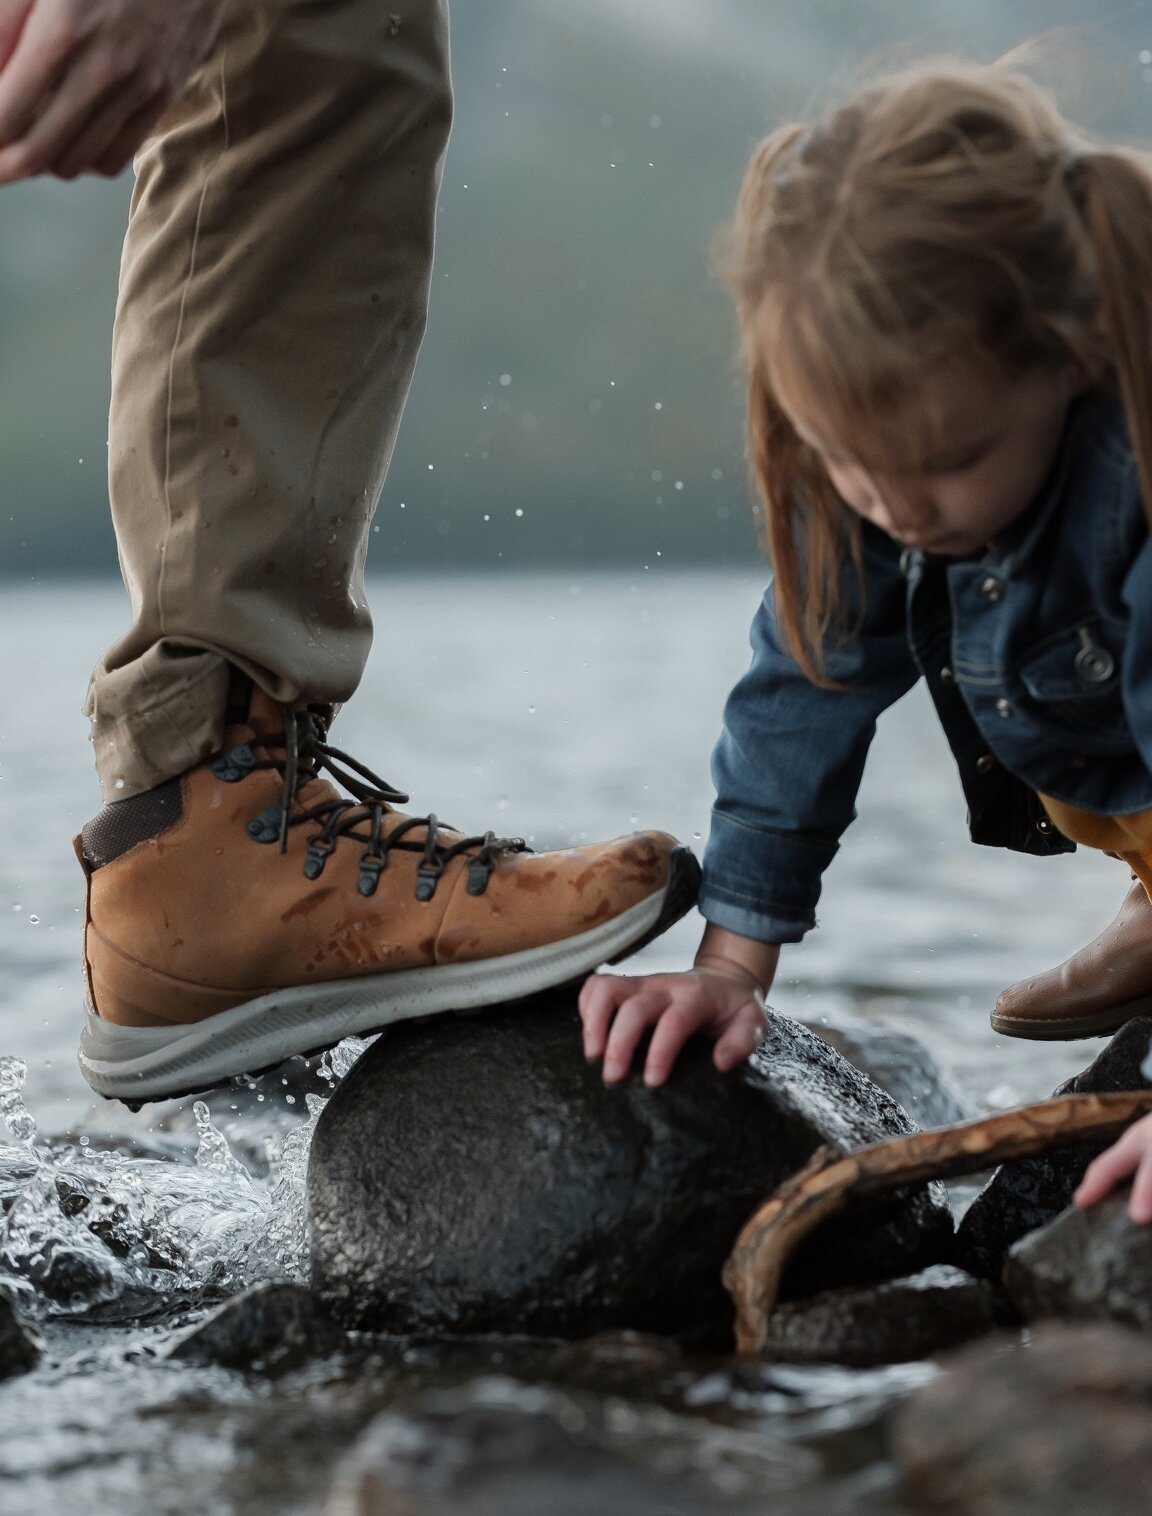 No more soggy feet after chasing down a kid or two through the mud! -